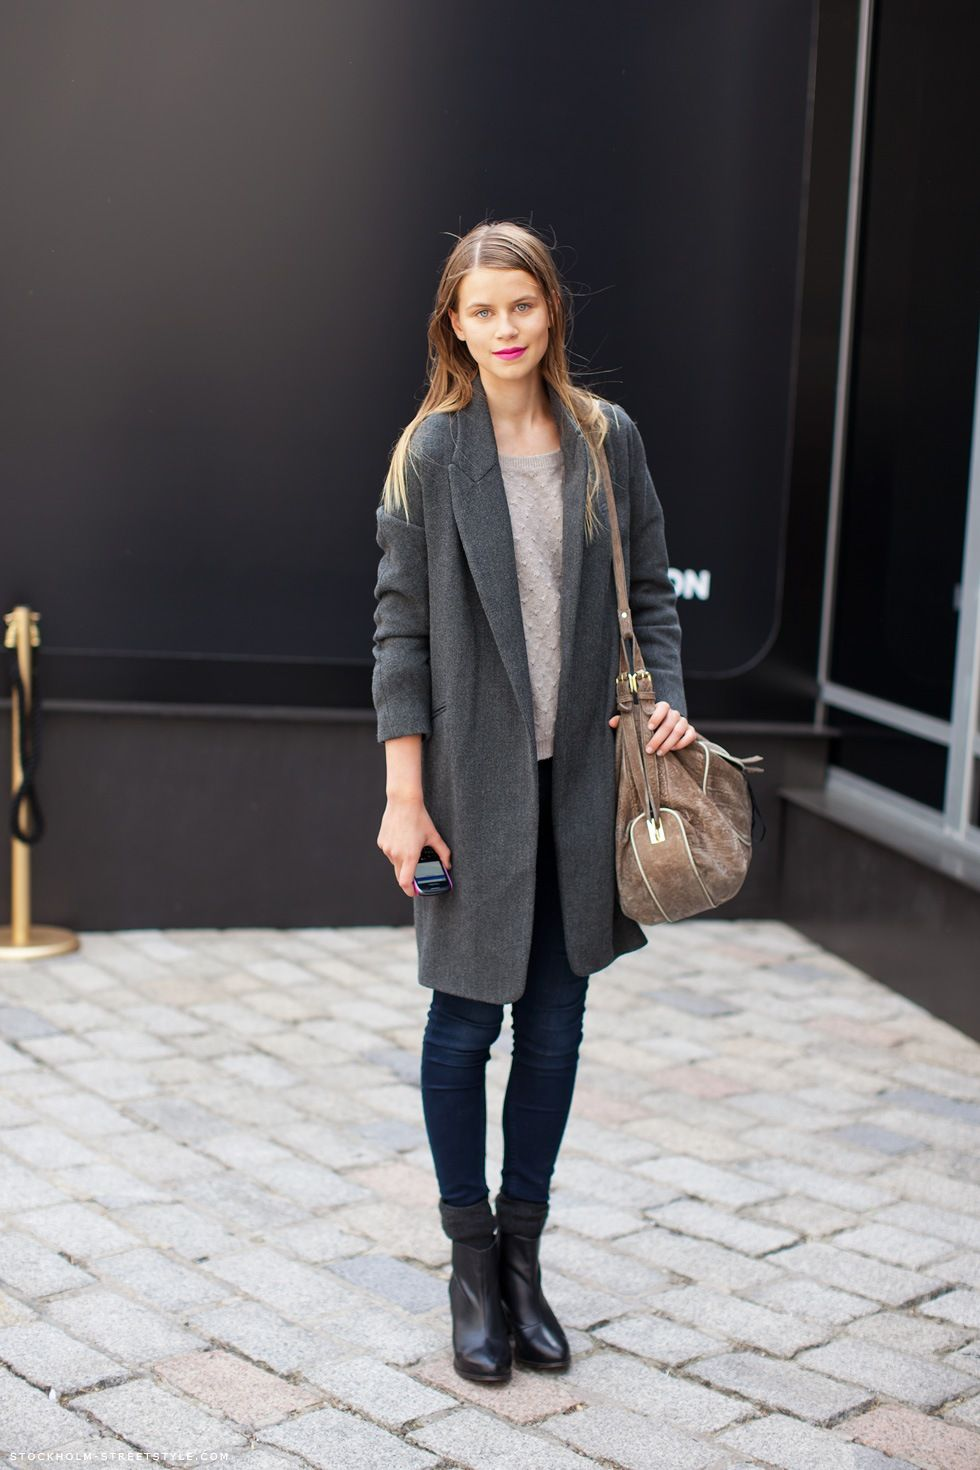 Oversized coats for A/W '13 paired with skinny jeans and tee and finished with simple boots